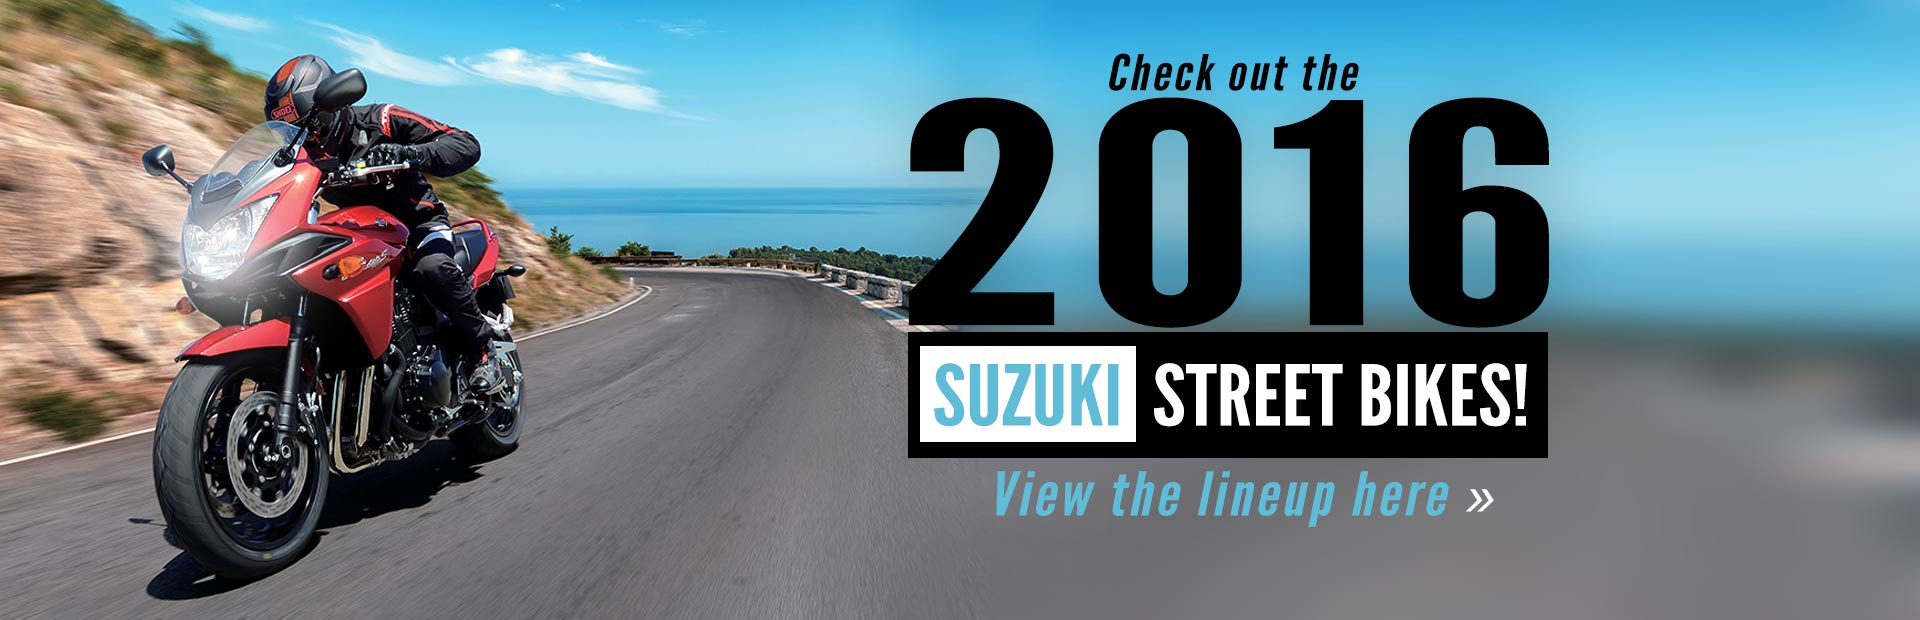 2016 Suzuki Street Bikes: Click here to view the models.